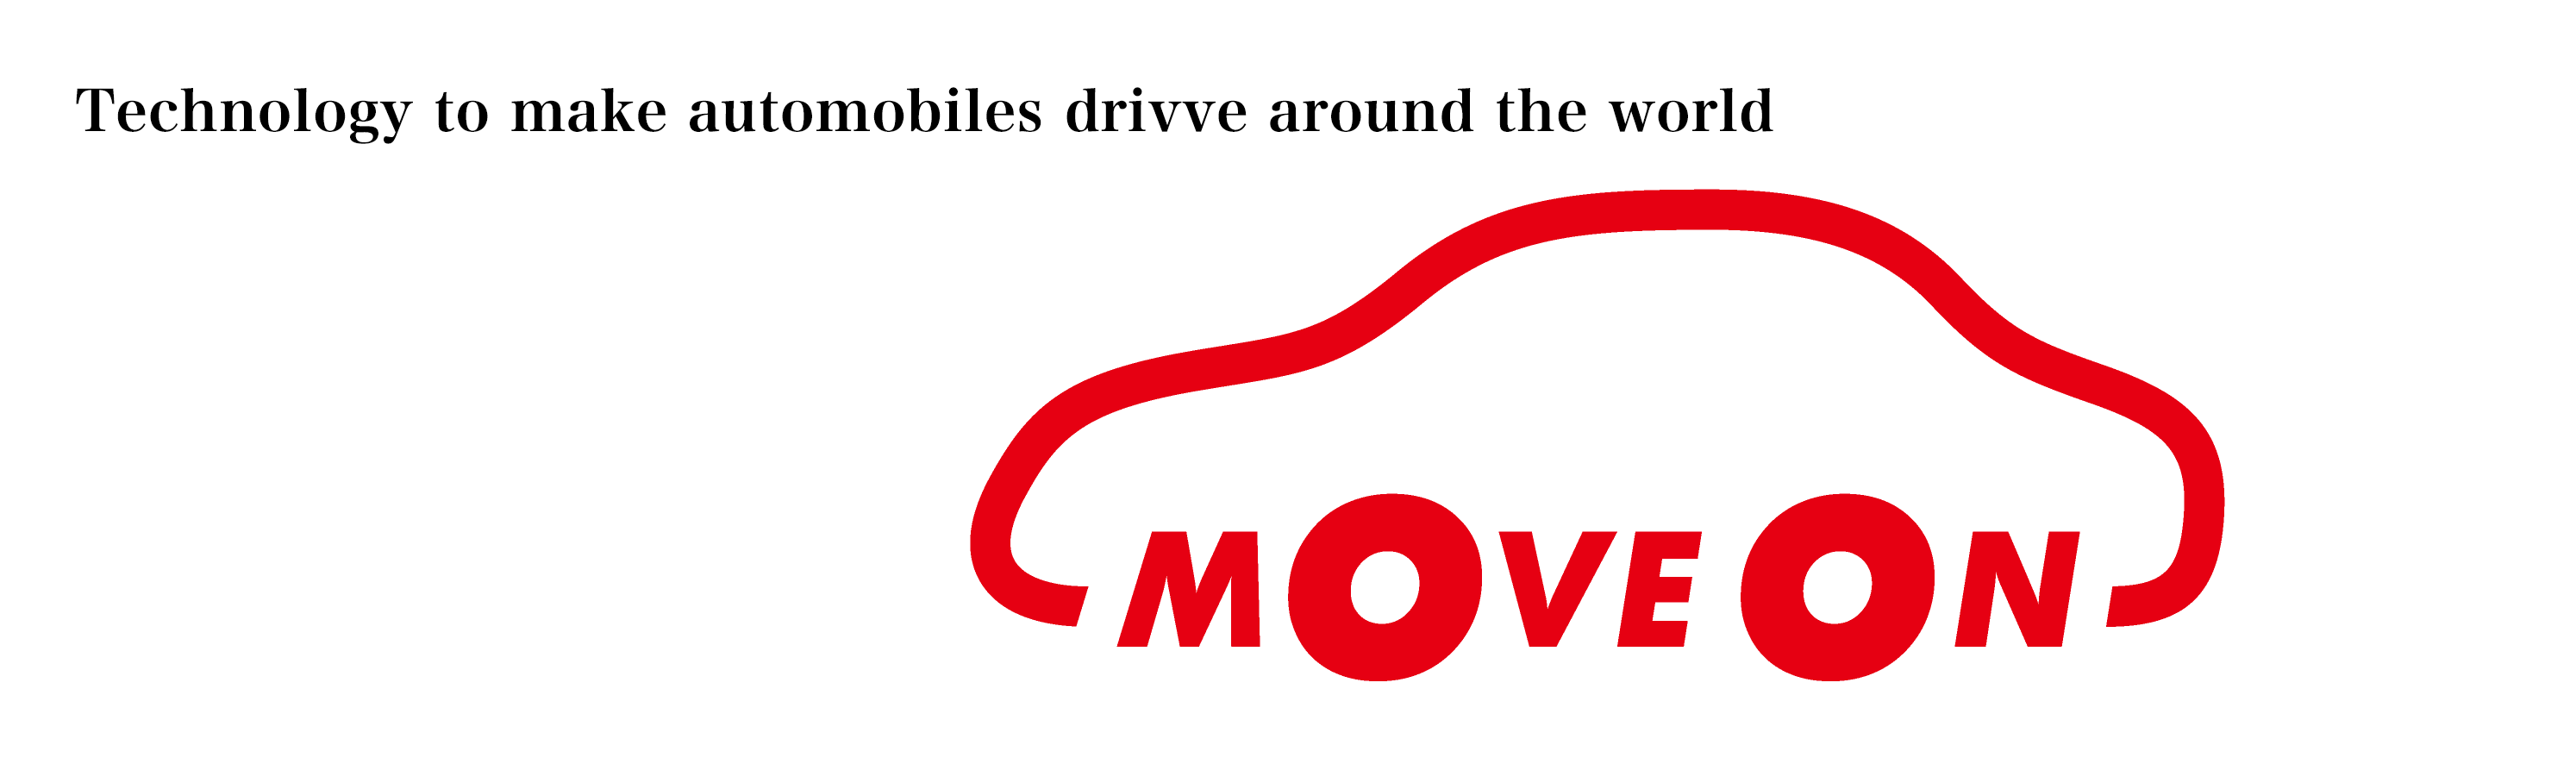 「MOVE ON」Technology to make automobiles drive around the world